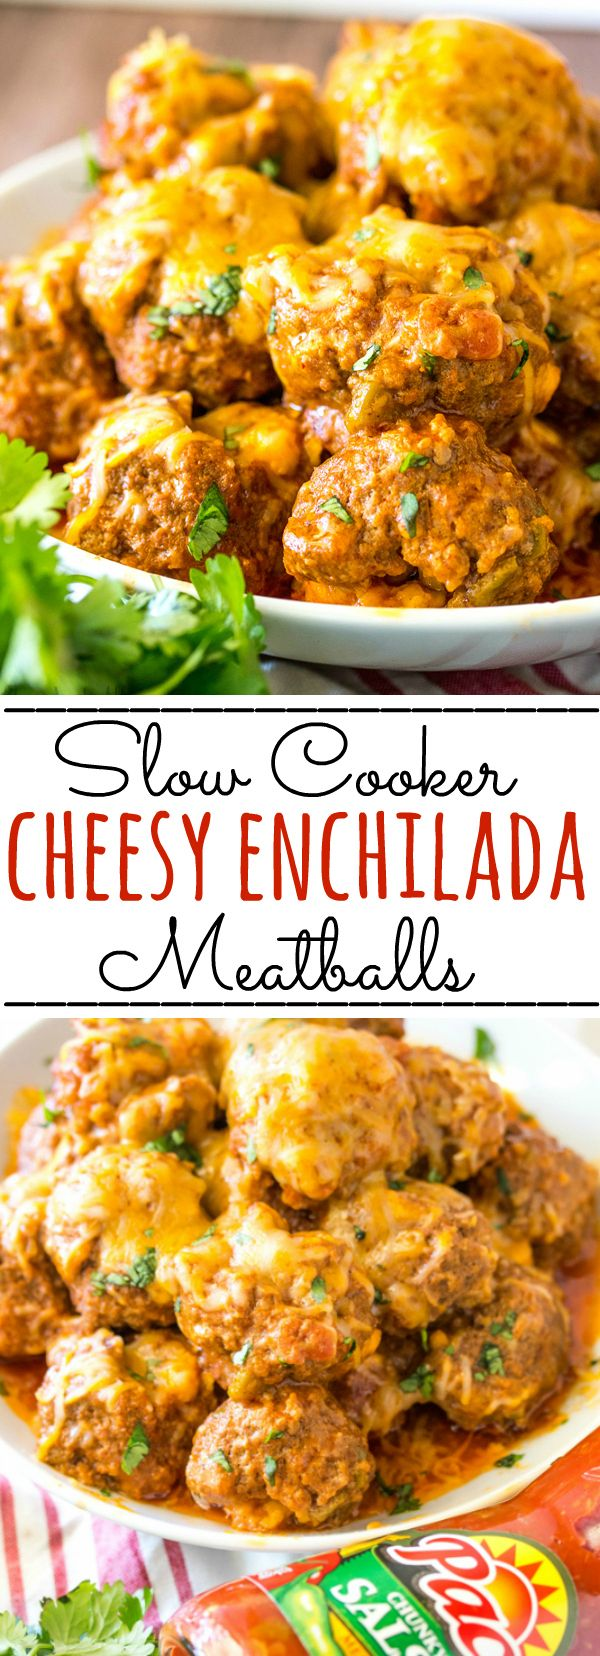 Slow Cooker Cheesy Enchilada Meatballs